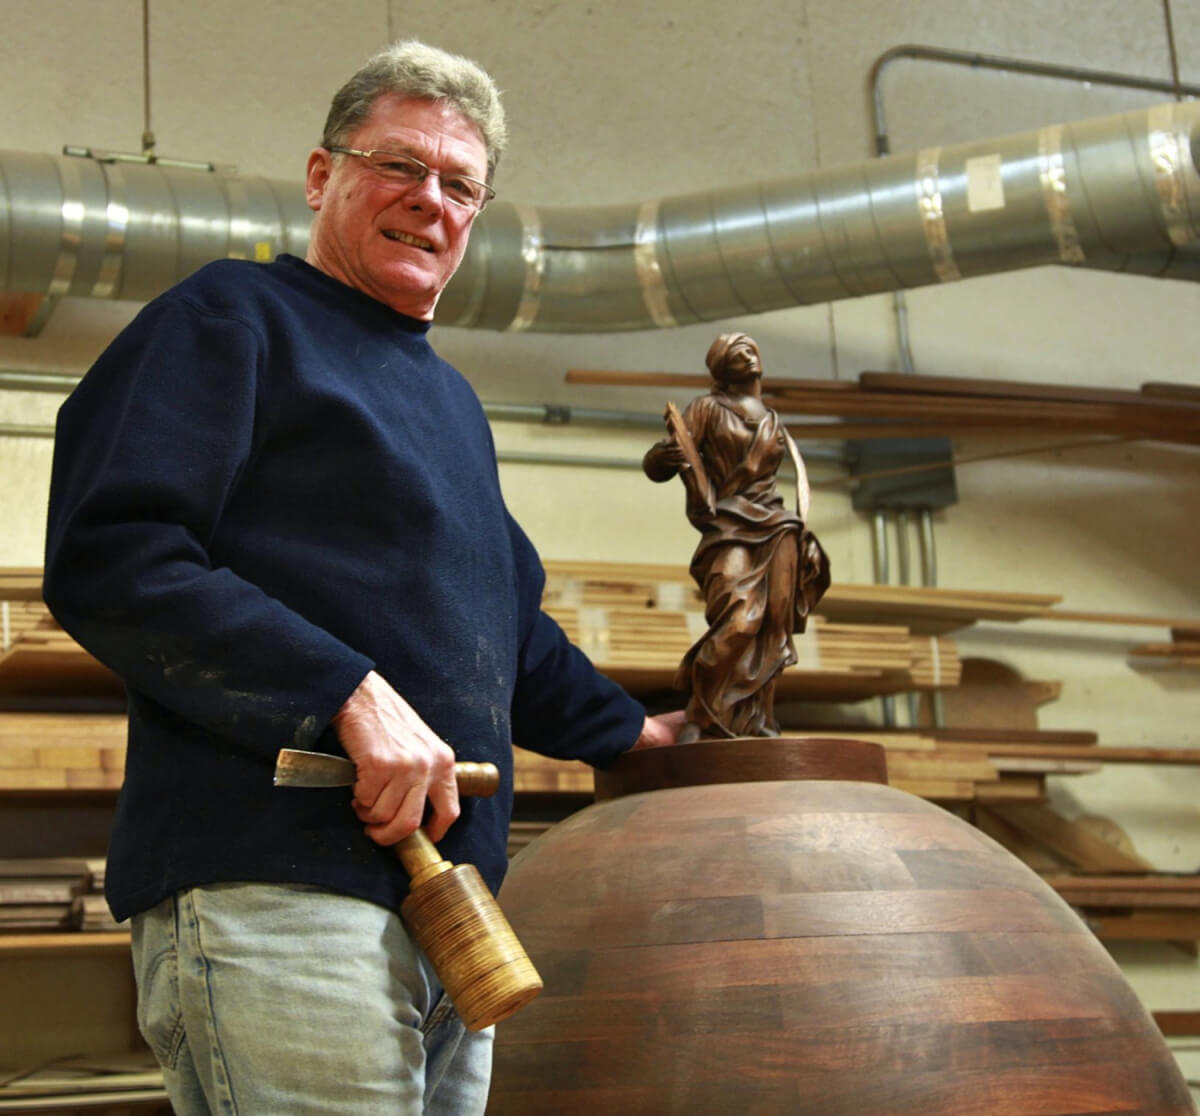 Ian Agrell poses with a hand-carved model of St. Cecilia